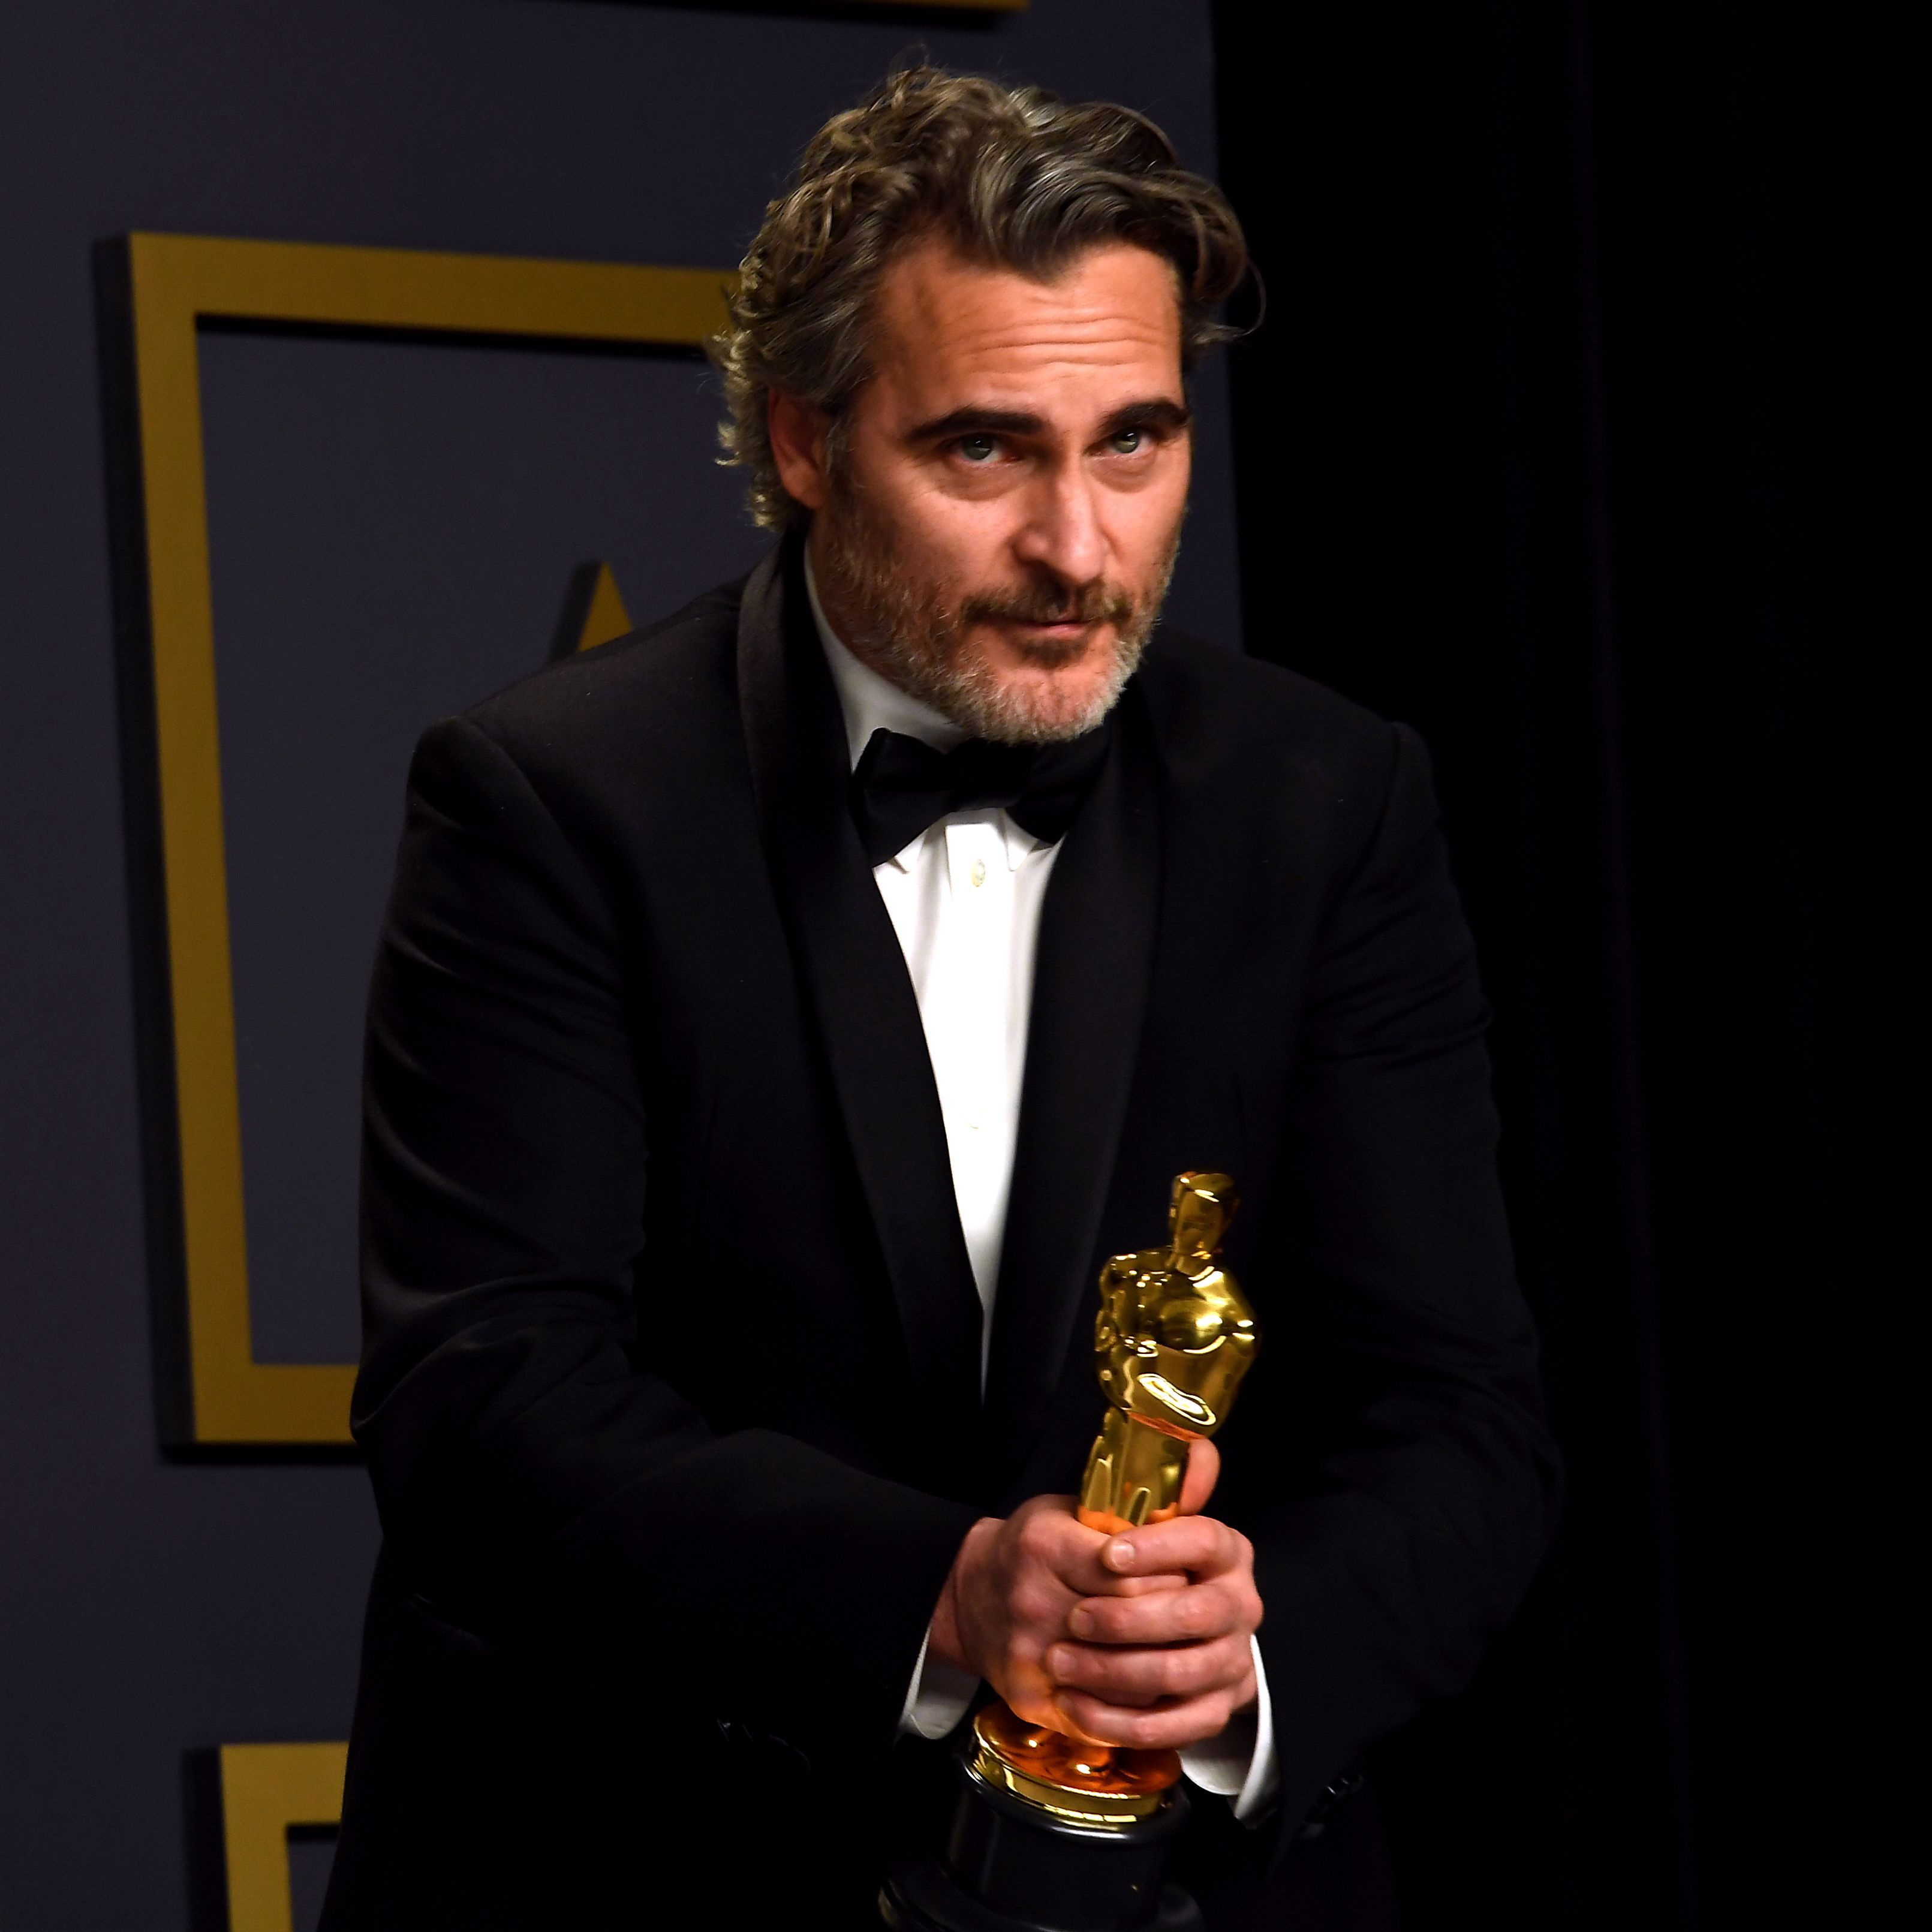 mgid ao image mtv.com 688739 Joaquin Phoenix's Best Actor Oscar Speech On Veganism And Discrimination In Hollywood - In Full